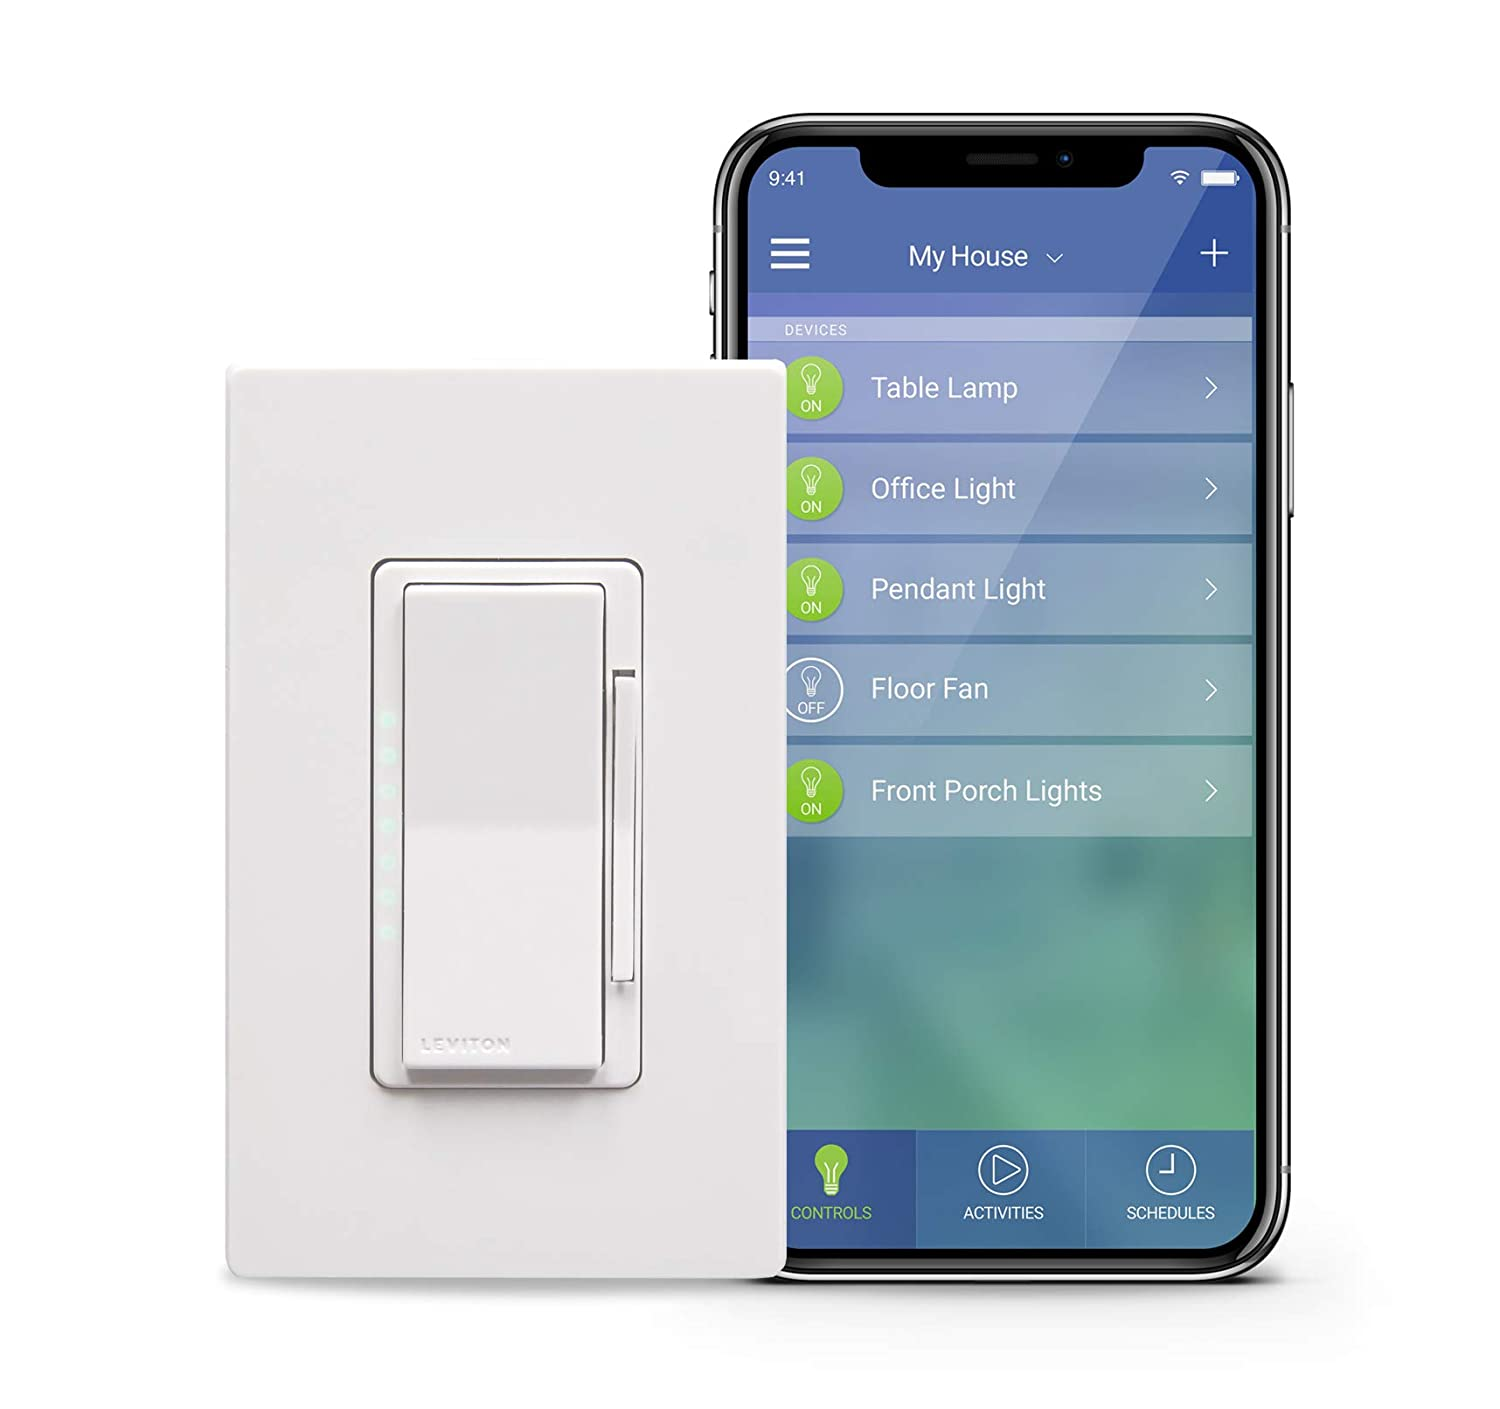 Leviton Dw6hd 1bz Decora Smart Wi Fi 600w Incandescent 300w Led Three Way Switch Wiring Diagram Problems Dimmer No Hub Required Works With Alexa Google Assistant And Nest